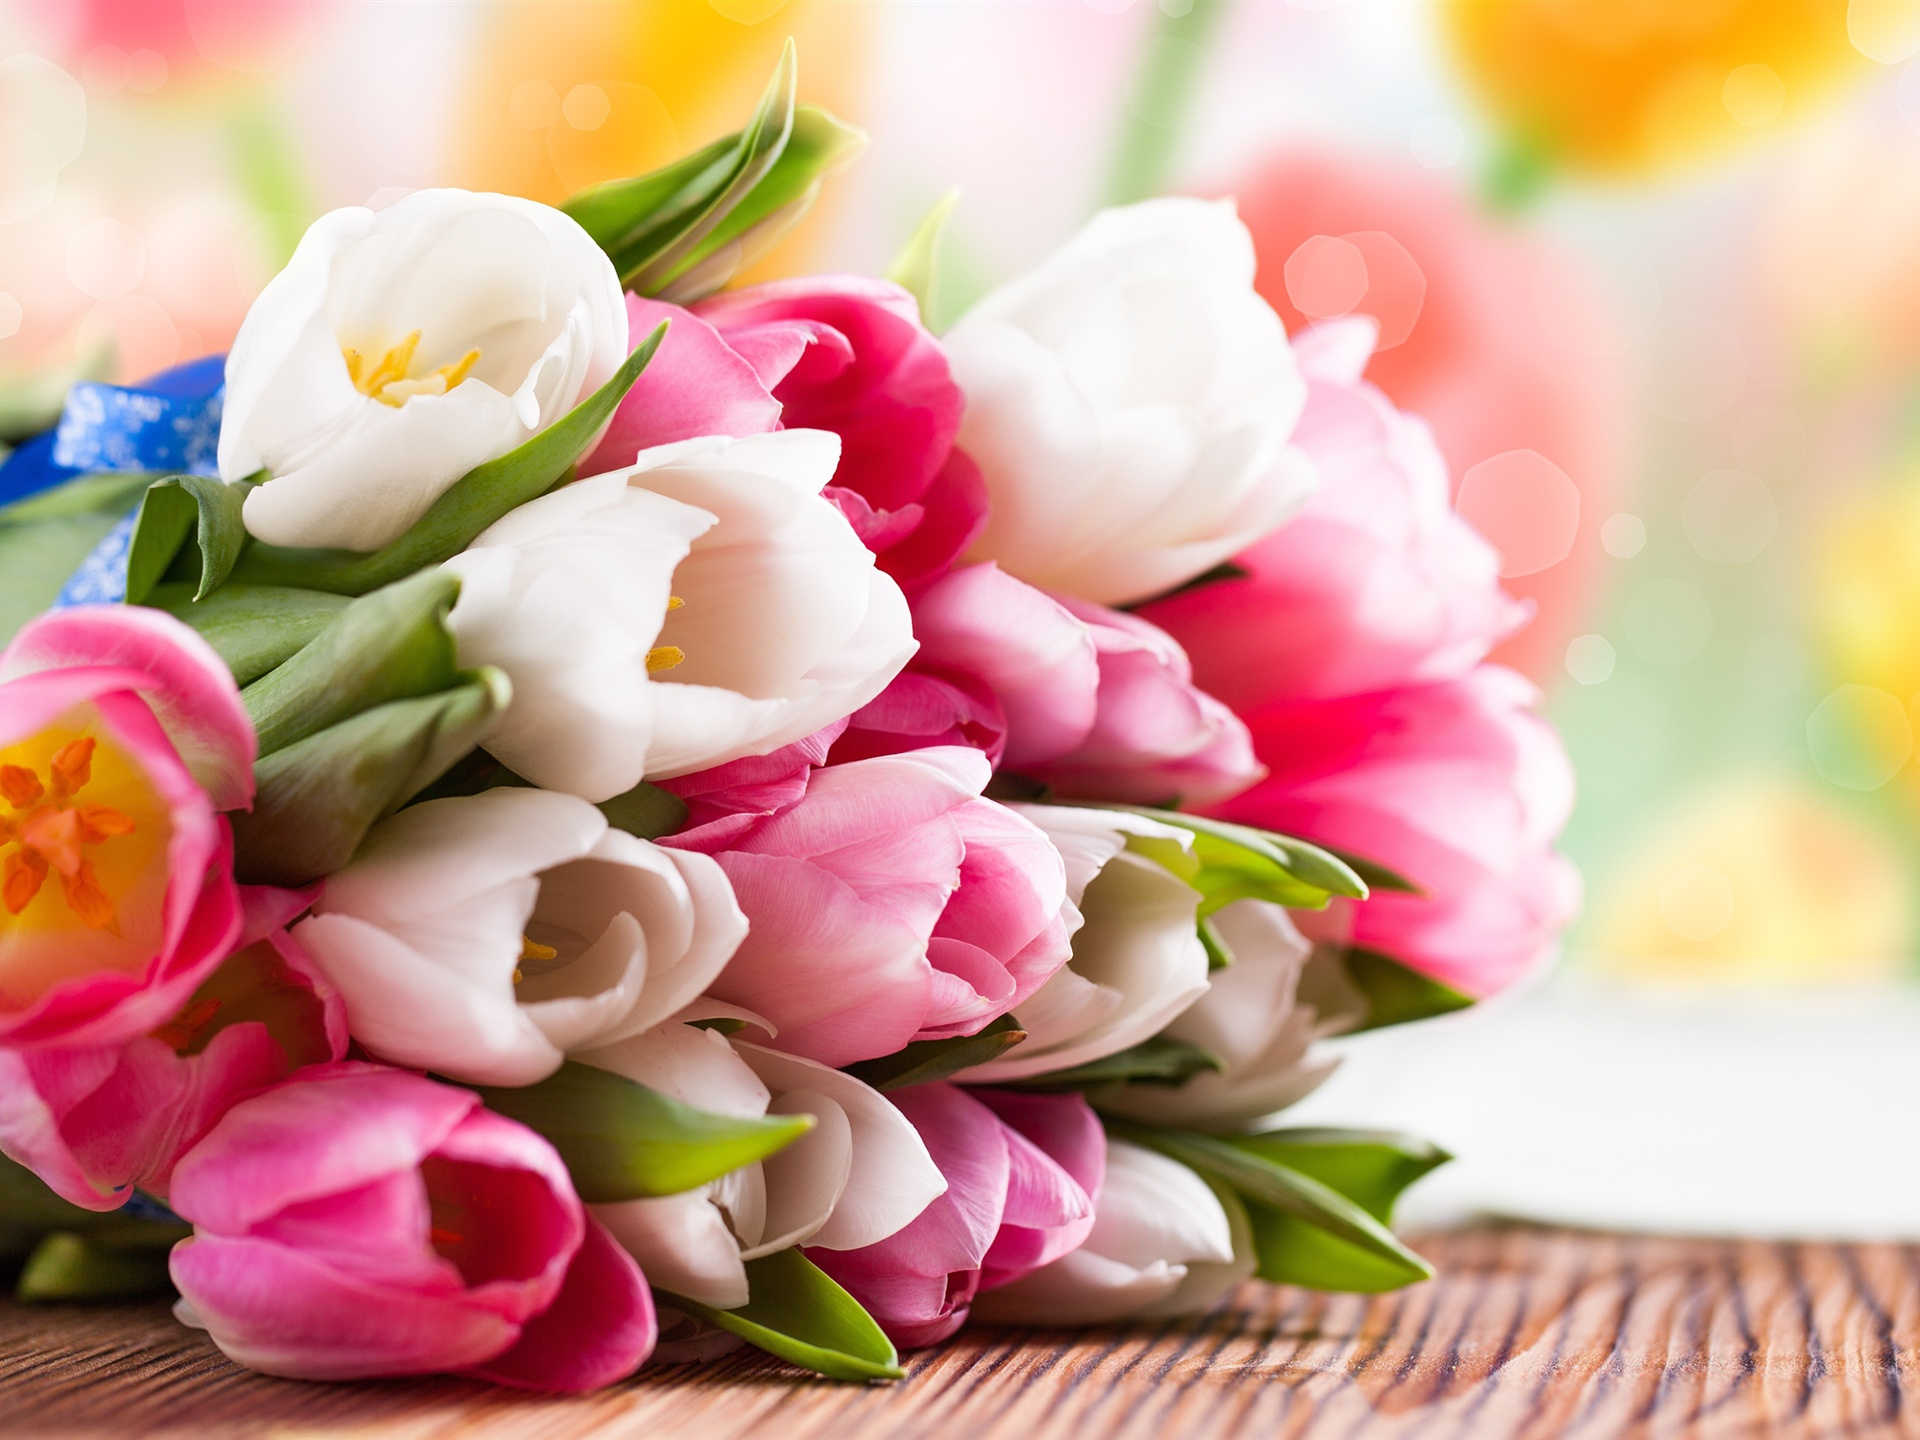 http://pt.best-wallpaper.net/wallpaper/1920x1440/1303/Pink-and-white-tulip-flower-bouquet_1920x1440.jpg